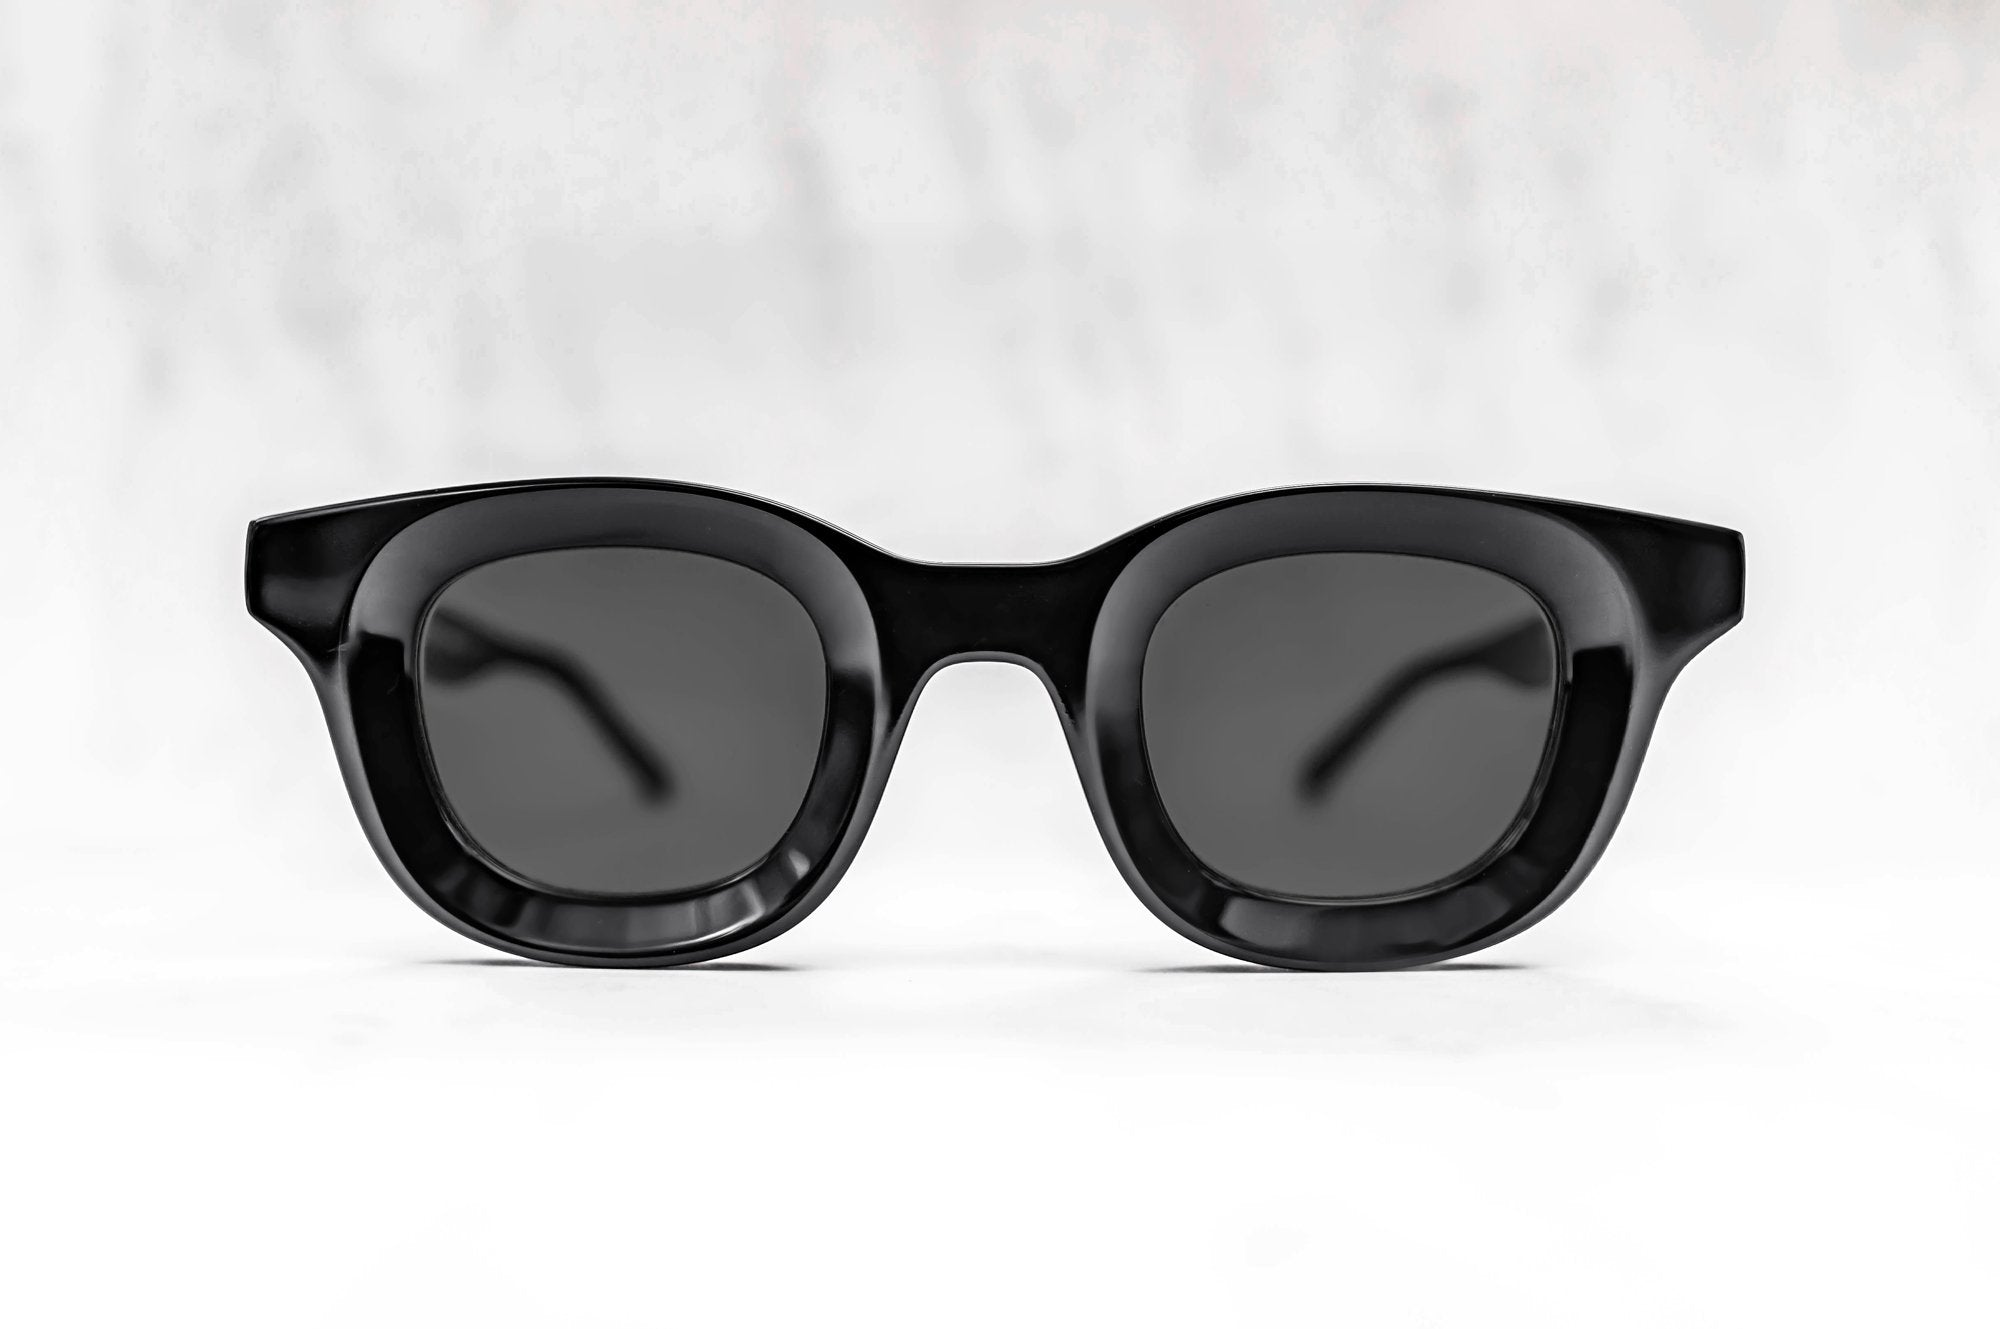 RHUDE x Thierry Lasry - Rhodeo Sunglasses in Black w/ Grey Lenses (101)